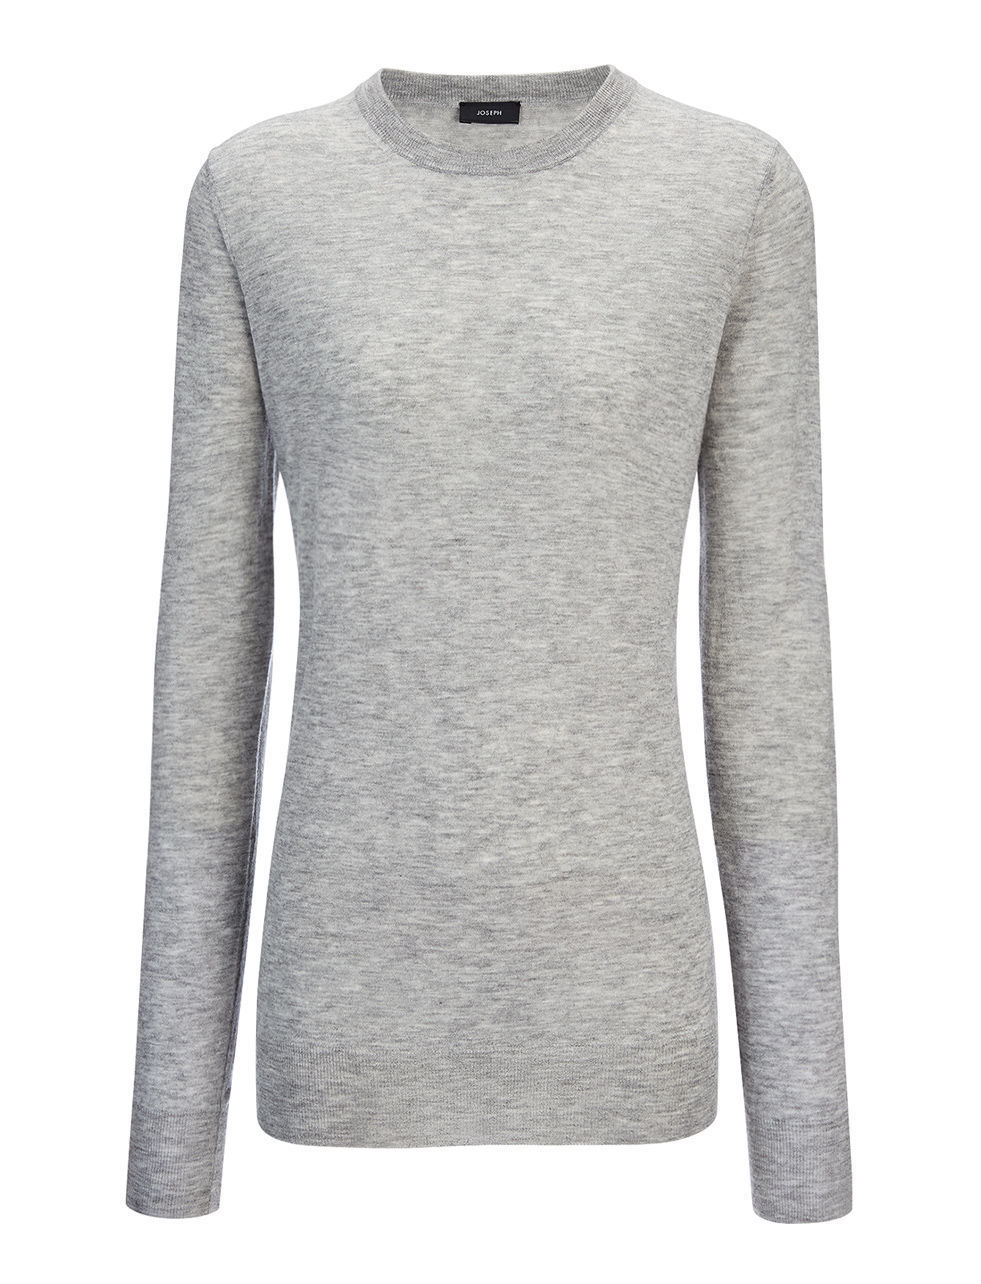 Cashair Top In Marble - pattern: plain; neckline: high neck; hip detail: fitted at hip; predominant colour: light grey; occasions: casual; length: standard; style: top; fit: body skimming; fibres: cashmere - 100%; sleeve length: long sleeve; sleeve style: standard; texture group: knits/crochet; pattern type: knitted - fine stitch; season: s/s 2016; wardrobe: basic